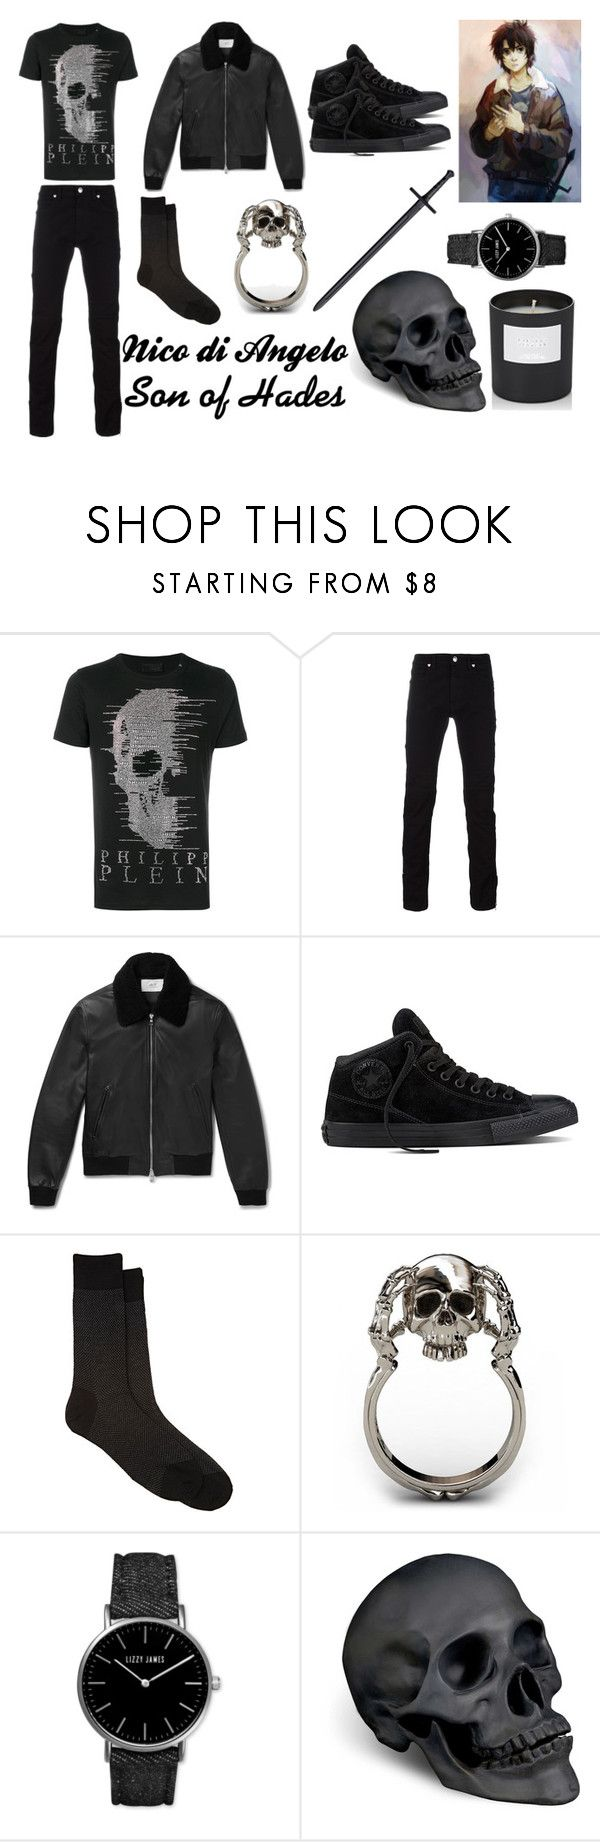 """""""Nico di Angelo, Son of Hades"""" by percy123jackson ❤ liked on Polyvore featuring Philipp Plein, Versace, Converse, Barneys New York, Lizzy James, L'Objet, men's fashion, menswear, NicoDiAngelo and heroesofolympus"""